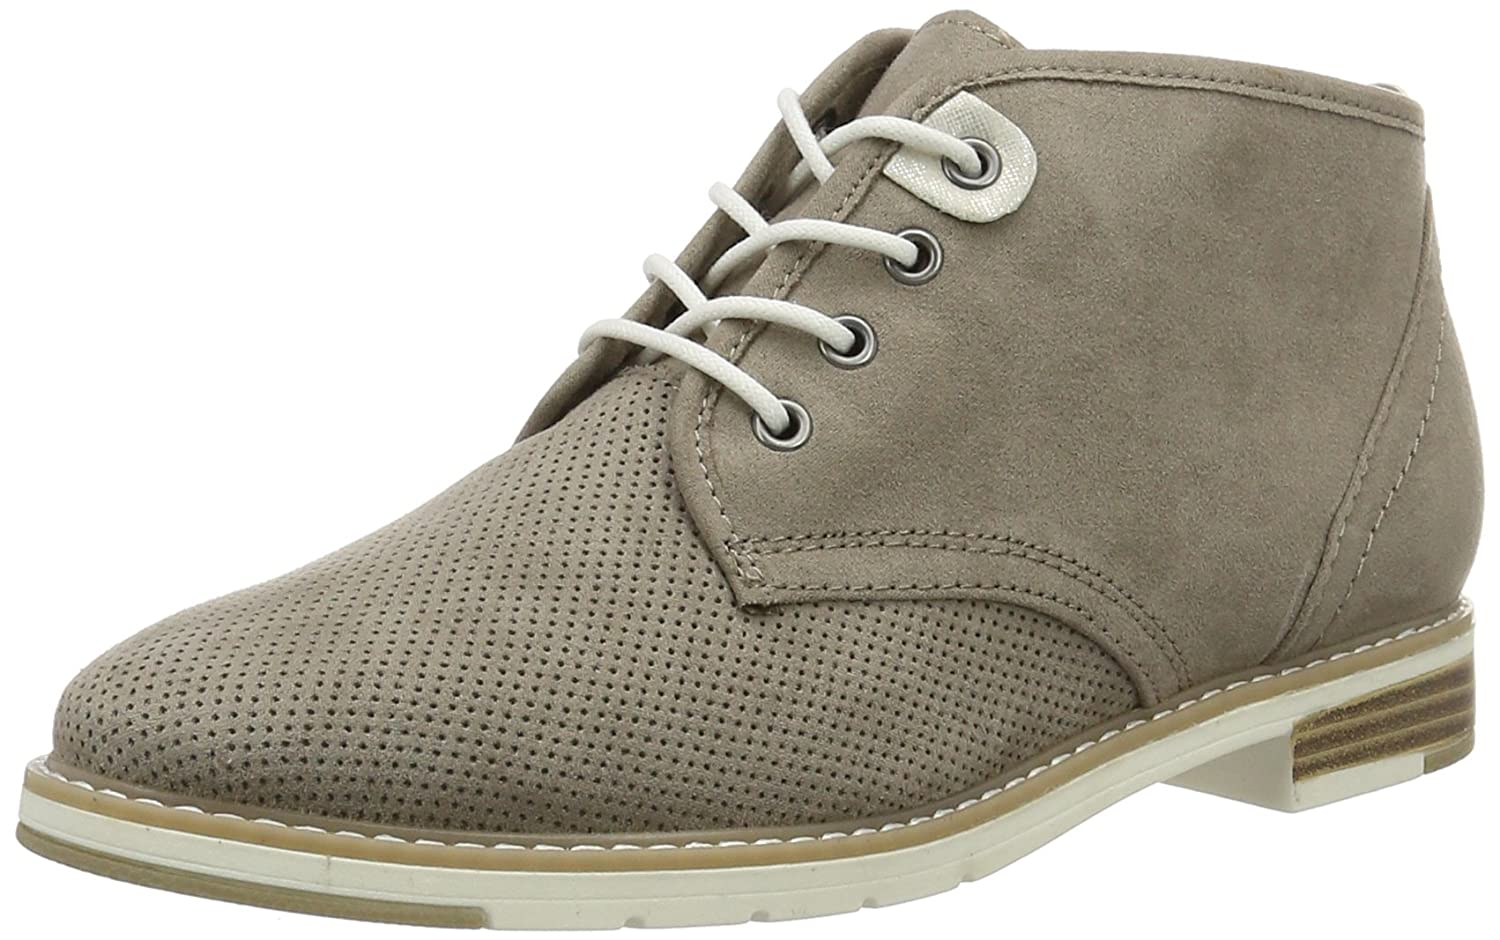 Softline 25263, Bottes Chukka Femme Bottes 19957 Beige Beige (Lt. Taupe 347) ded80a4 - automaticcouplings.space